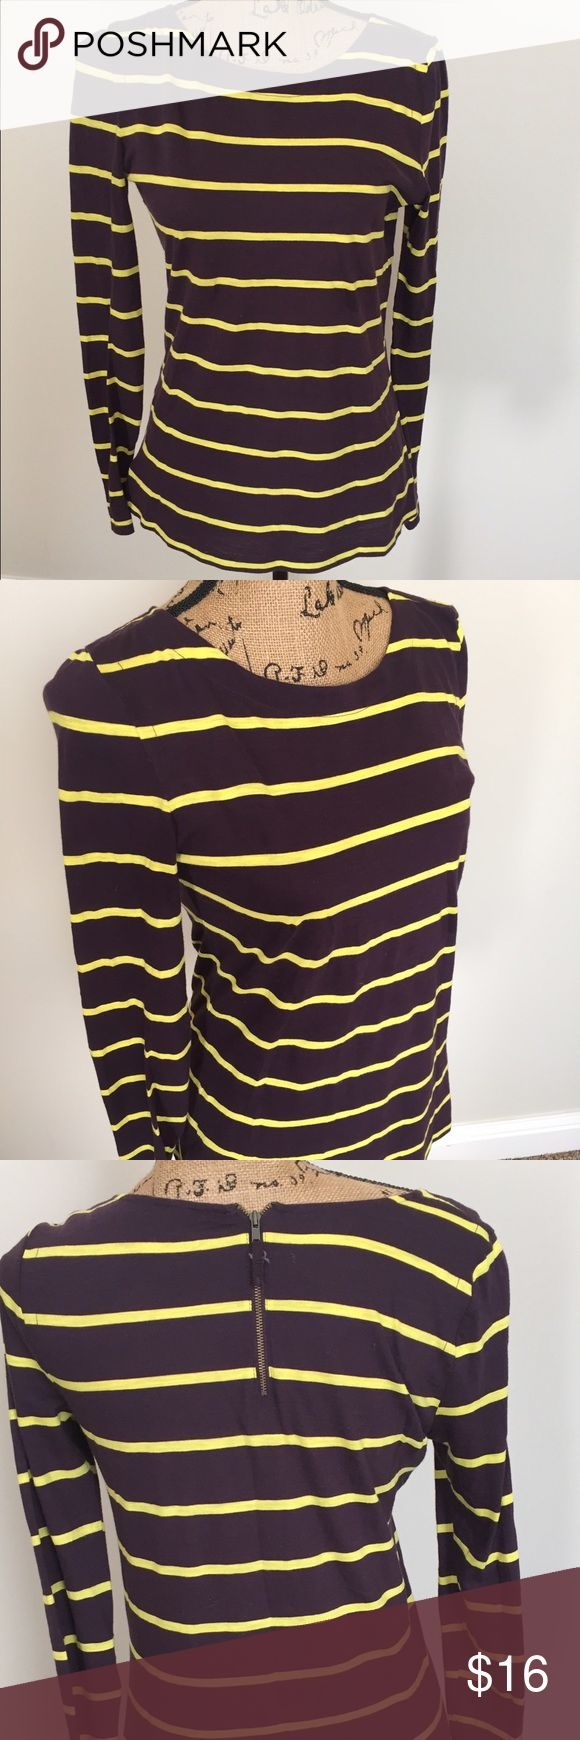 Ann Taylor LOFT Back Zip Striped T-Shirt Ann Taylor LOFT long sleeved t-shirt with back exposed zip detail. Color is deep Plum and yellow. Size small. Excellent condition with no signs of wear and no flaws. 💖I do not trade. I do not hold items. I ship within 2 business days of your order. I do accept reasonable offers. Thank you for looking! 🚭🐩B4 LOFT Tops Tees - Long Sleeve